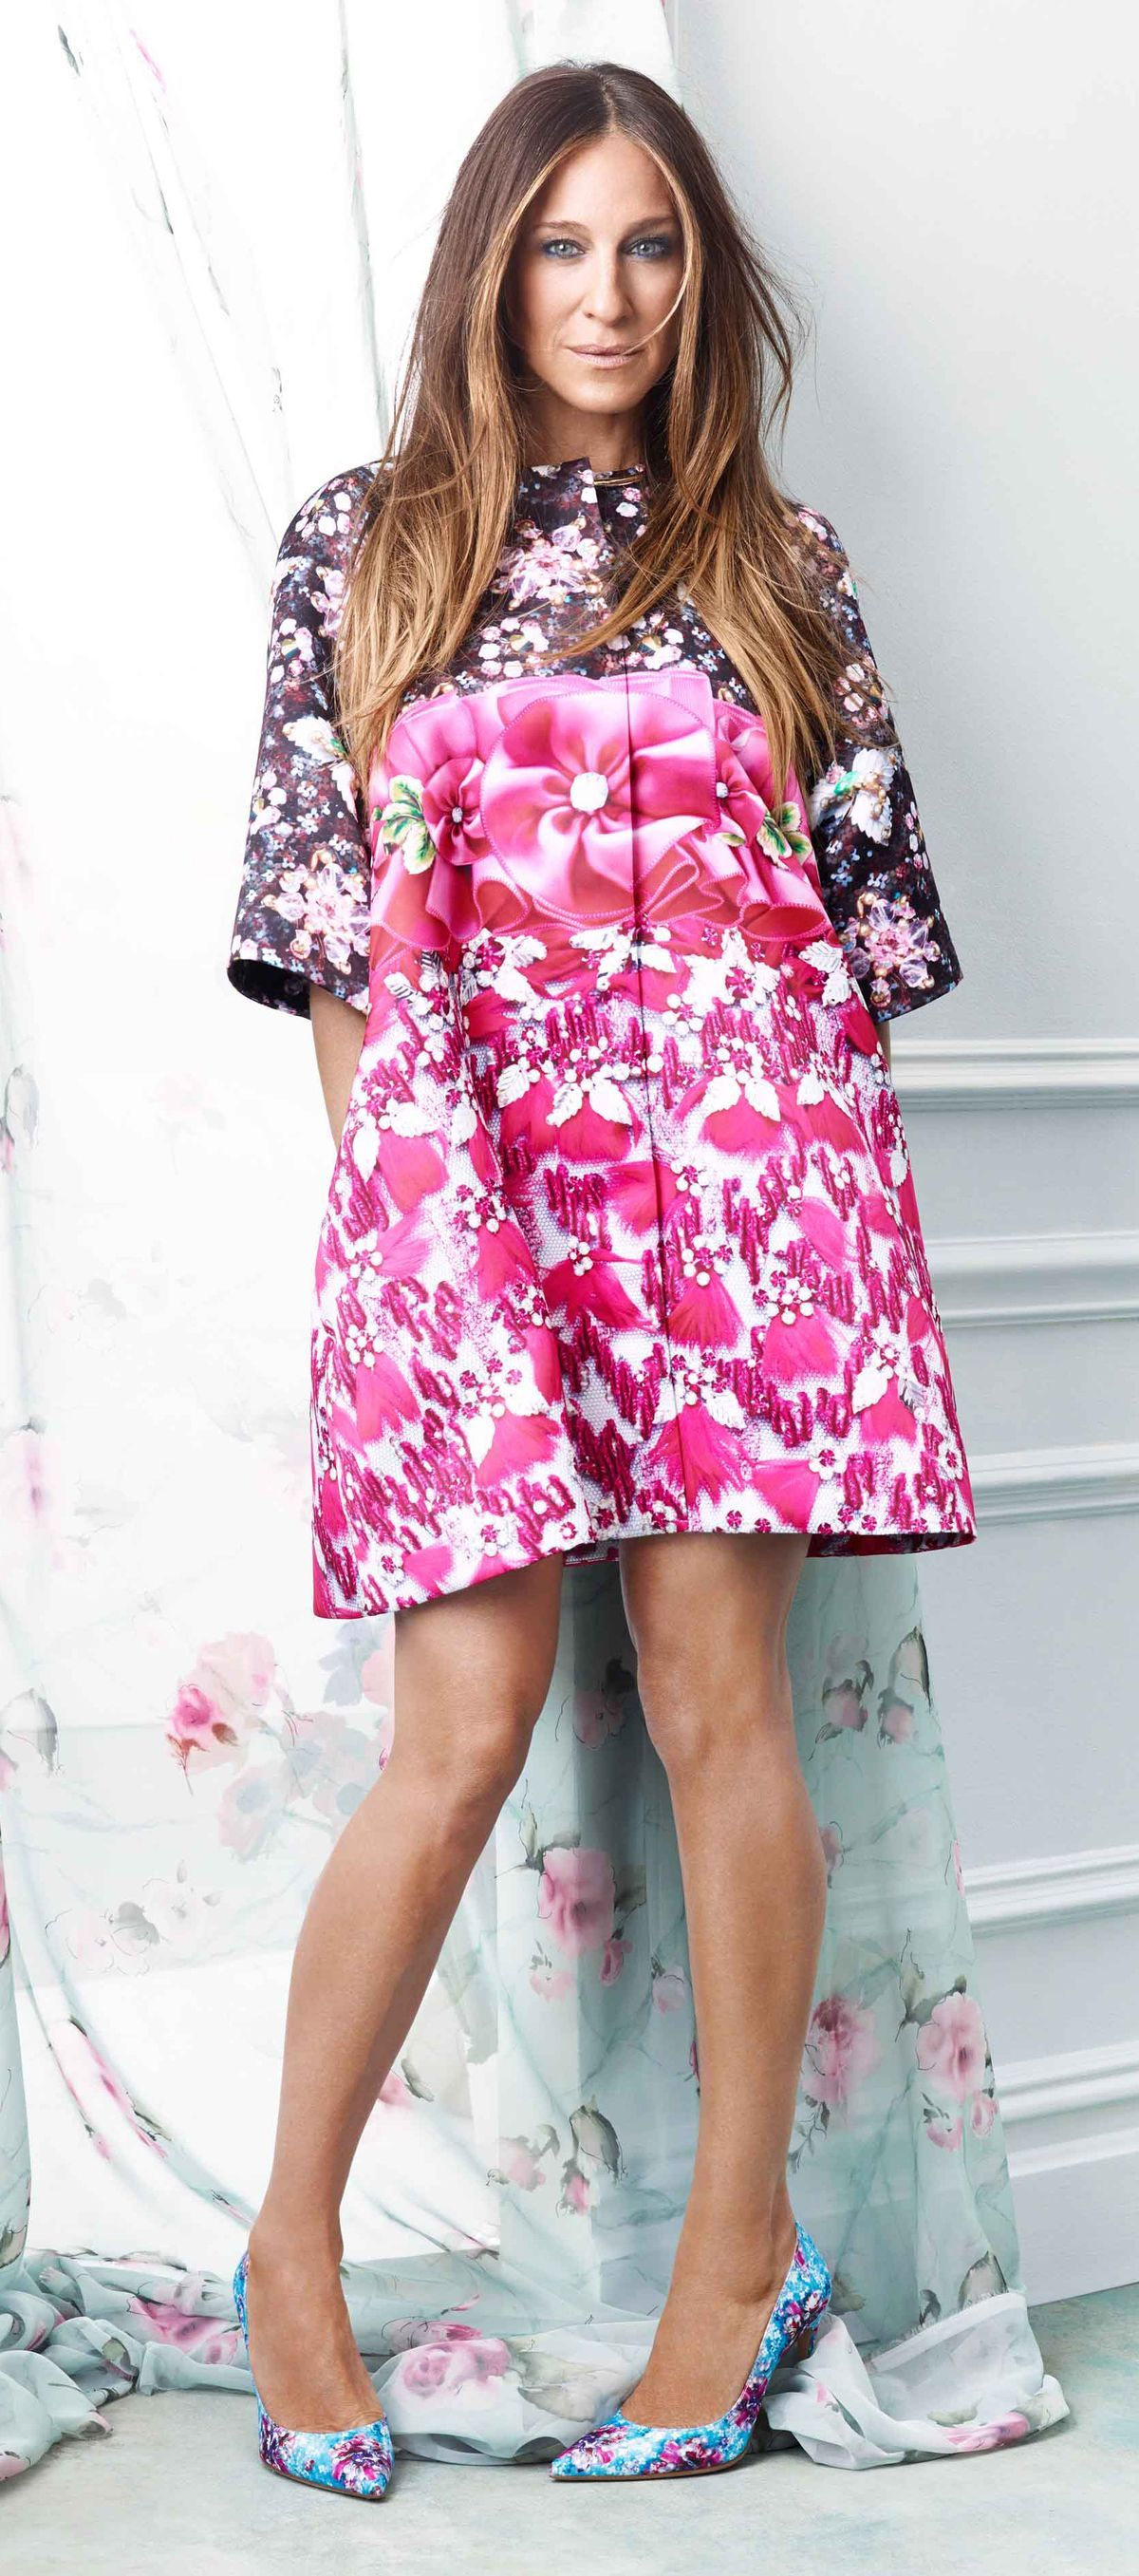 SJP in head-to-toe florals. Spring is here! | CELEBRITY FASHION ...